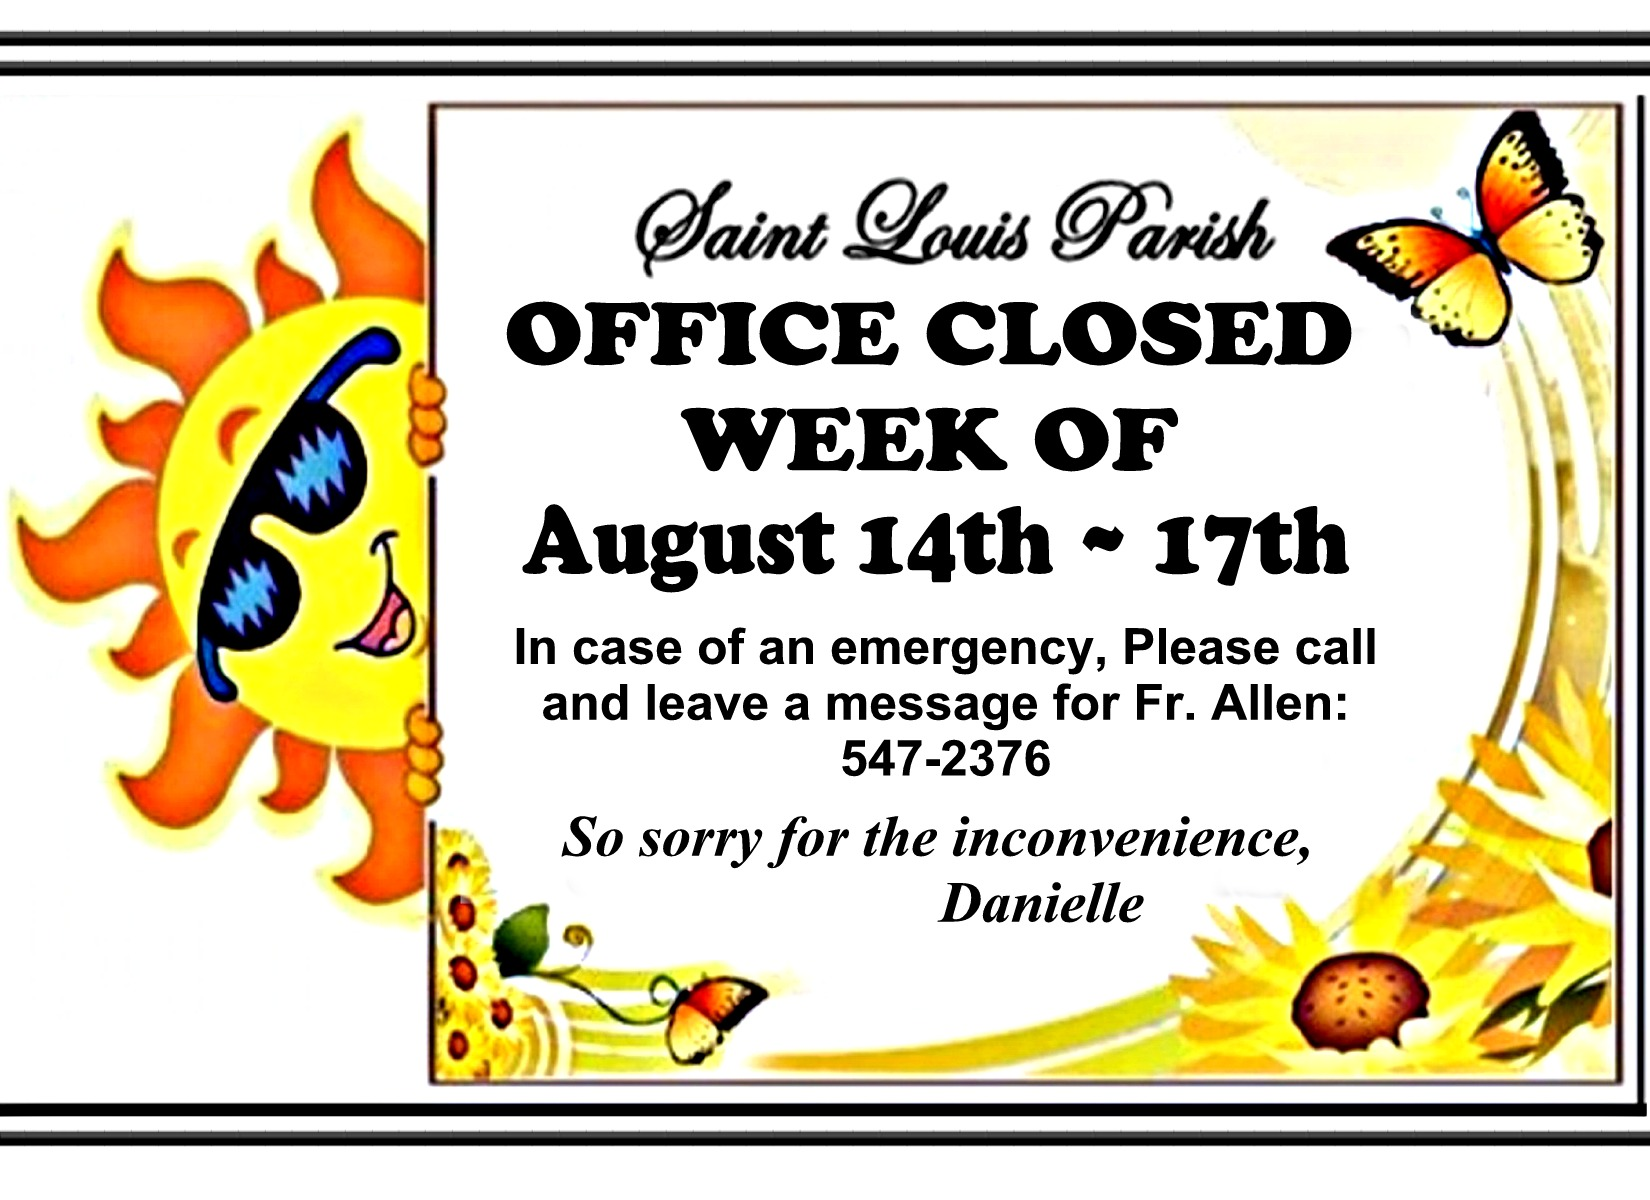 OFFICE CLOSED Notice Aug 2018 8.5 by 11